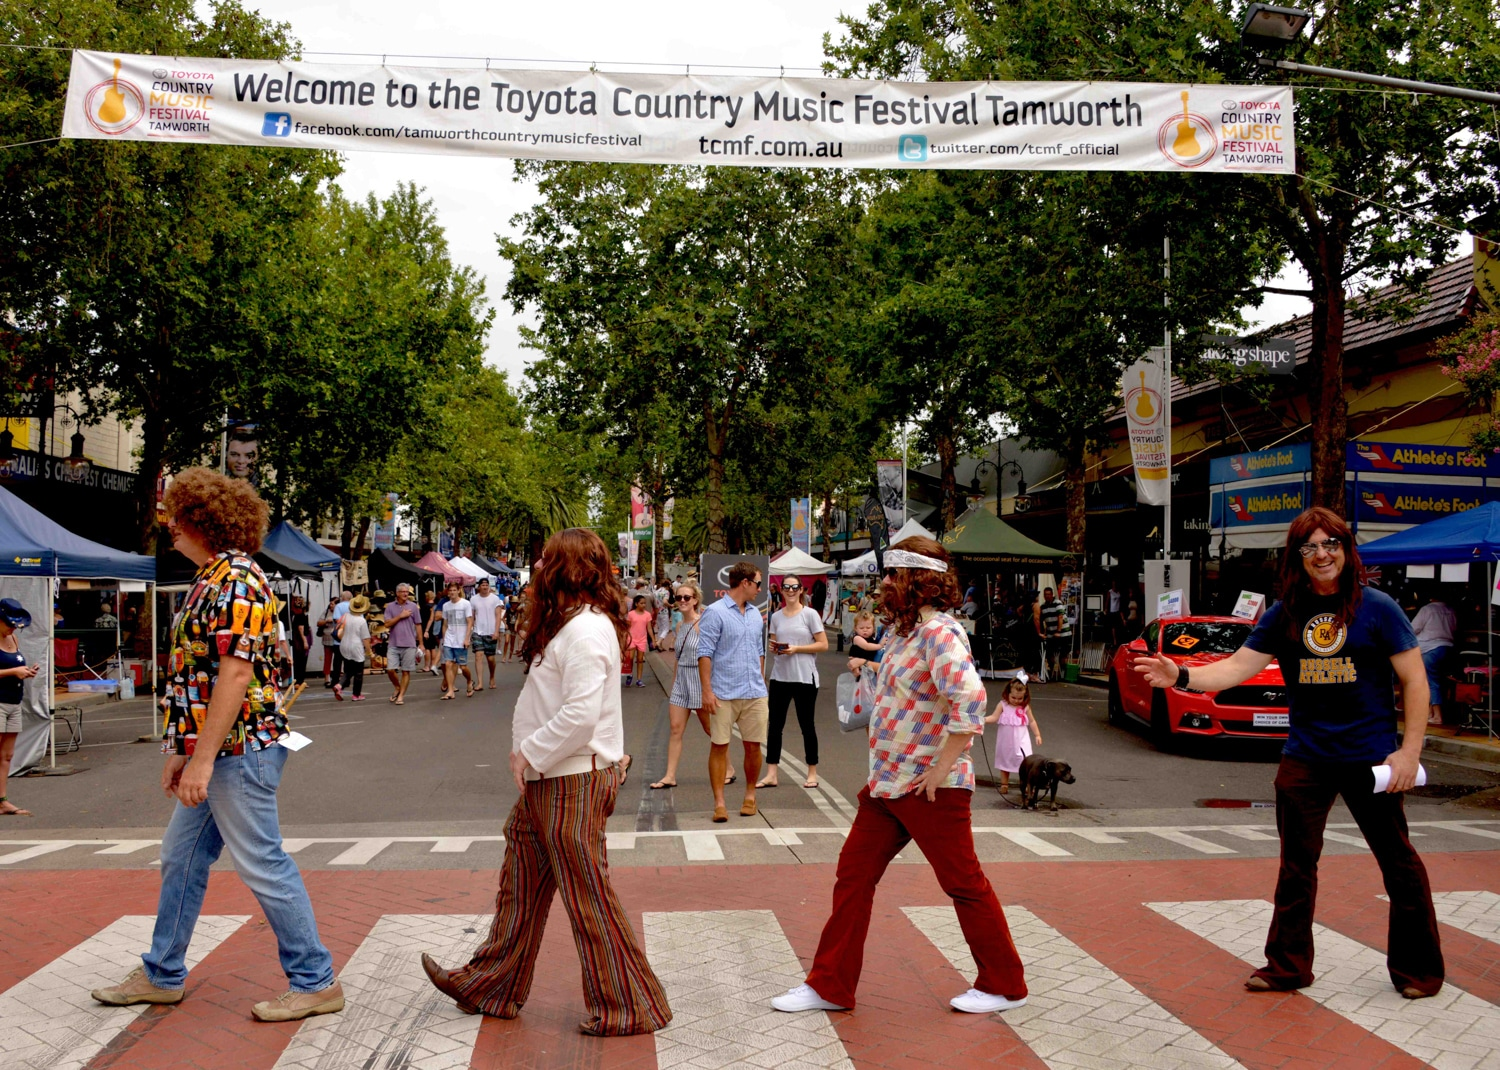 toyota country music festival people crossing road